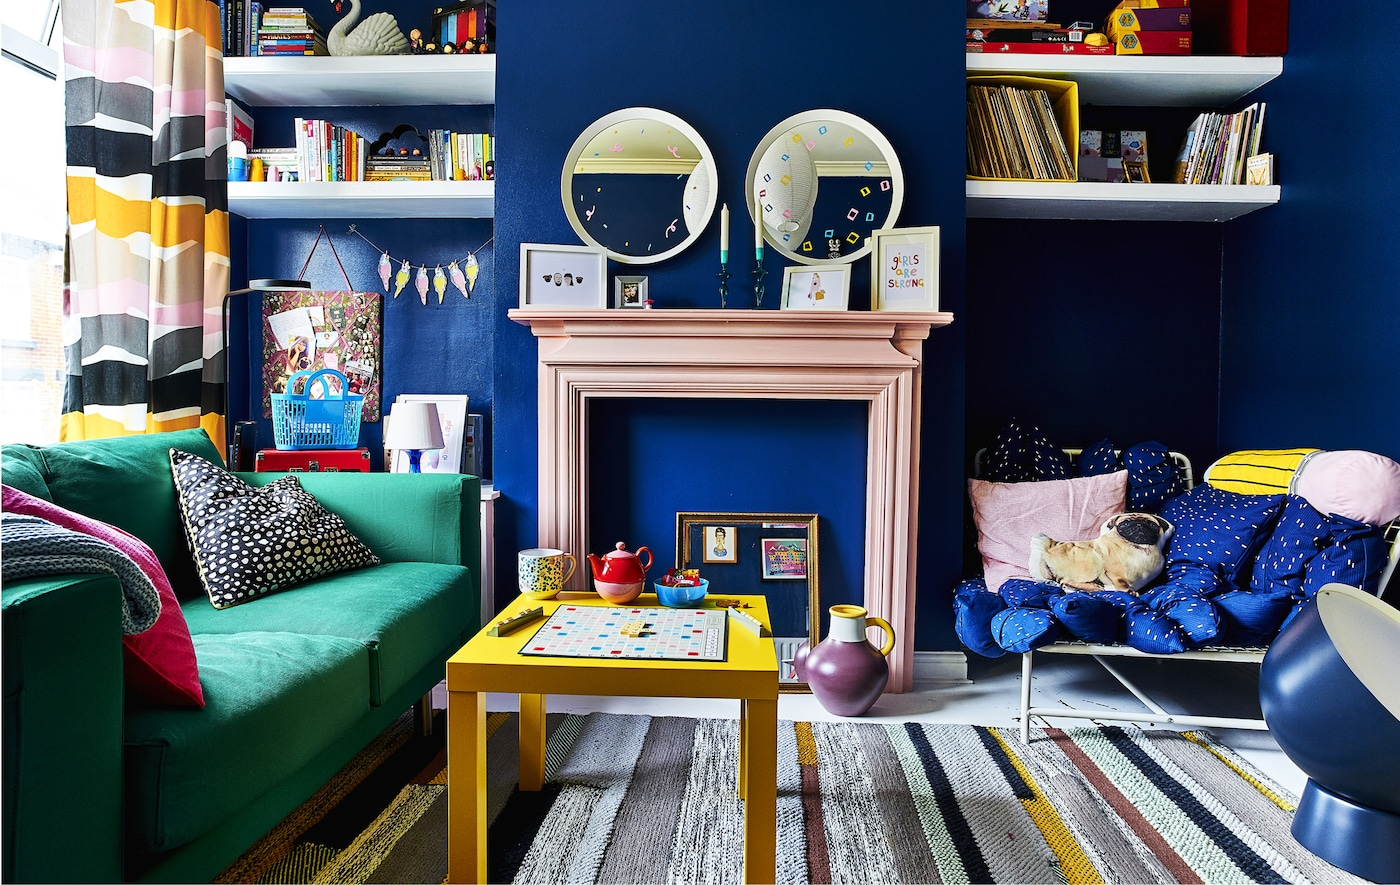 A colourful living room with green sofa and yellow coffee table in front of a pink fireplace mantel against navy blue walls.